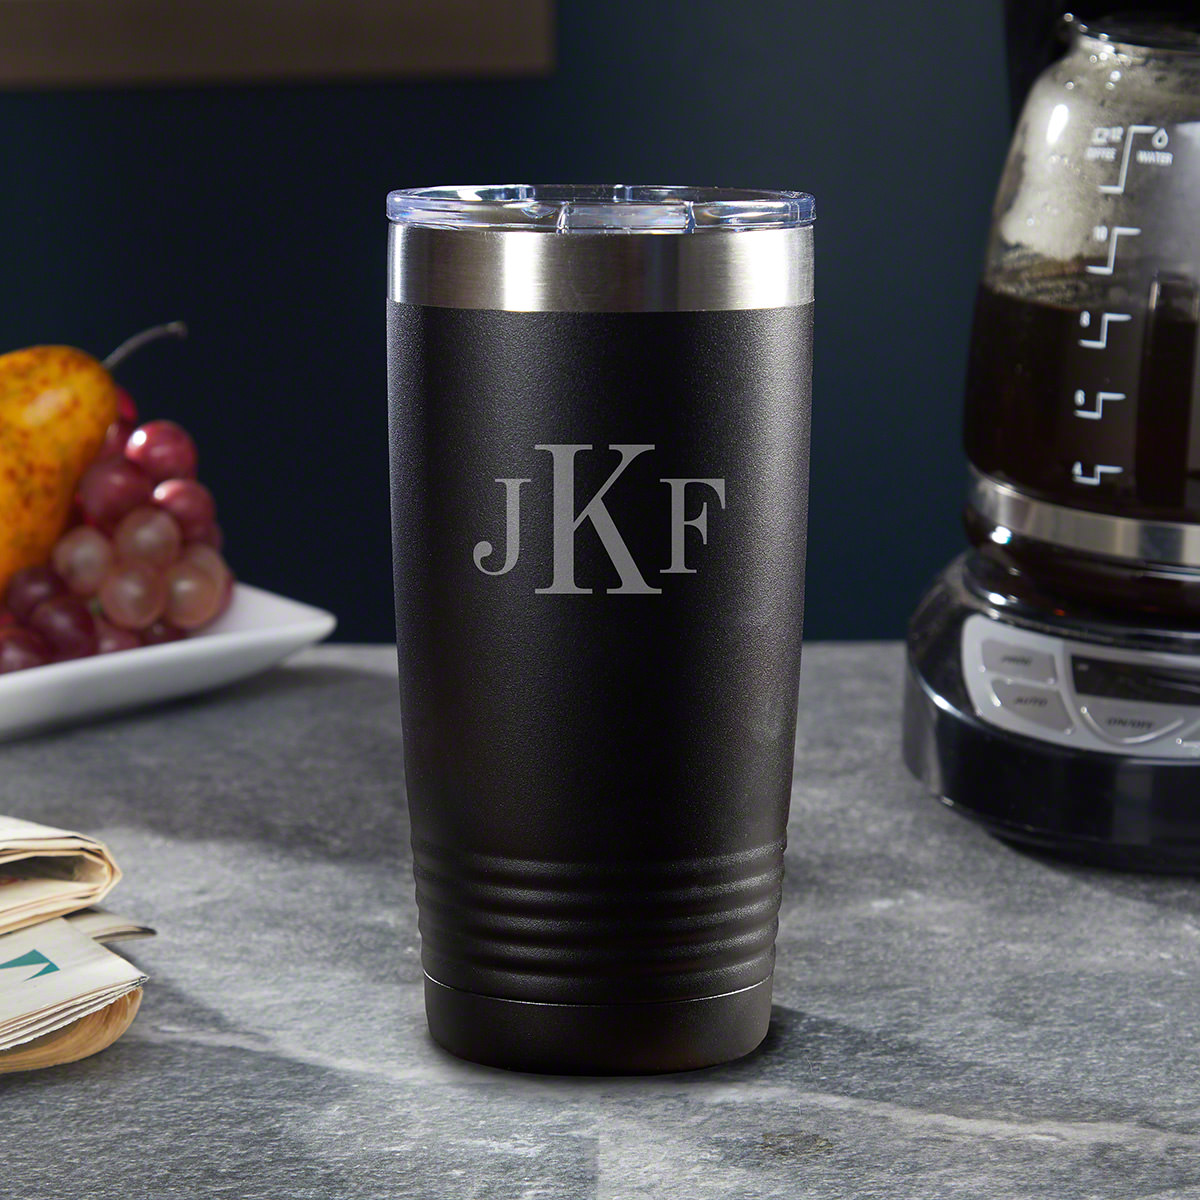 Do you drink hot or cold drinks? If the answer is both, you must check out our Classic Monogram stainless steel custom Yeti-style tumbler. Constructed from steadfast 18/8 stainless steel, these personalized travel mugs will keep your favorite beverages s #%20